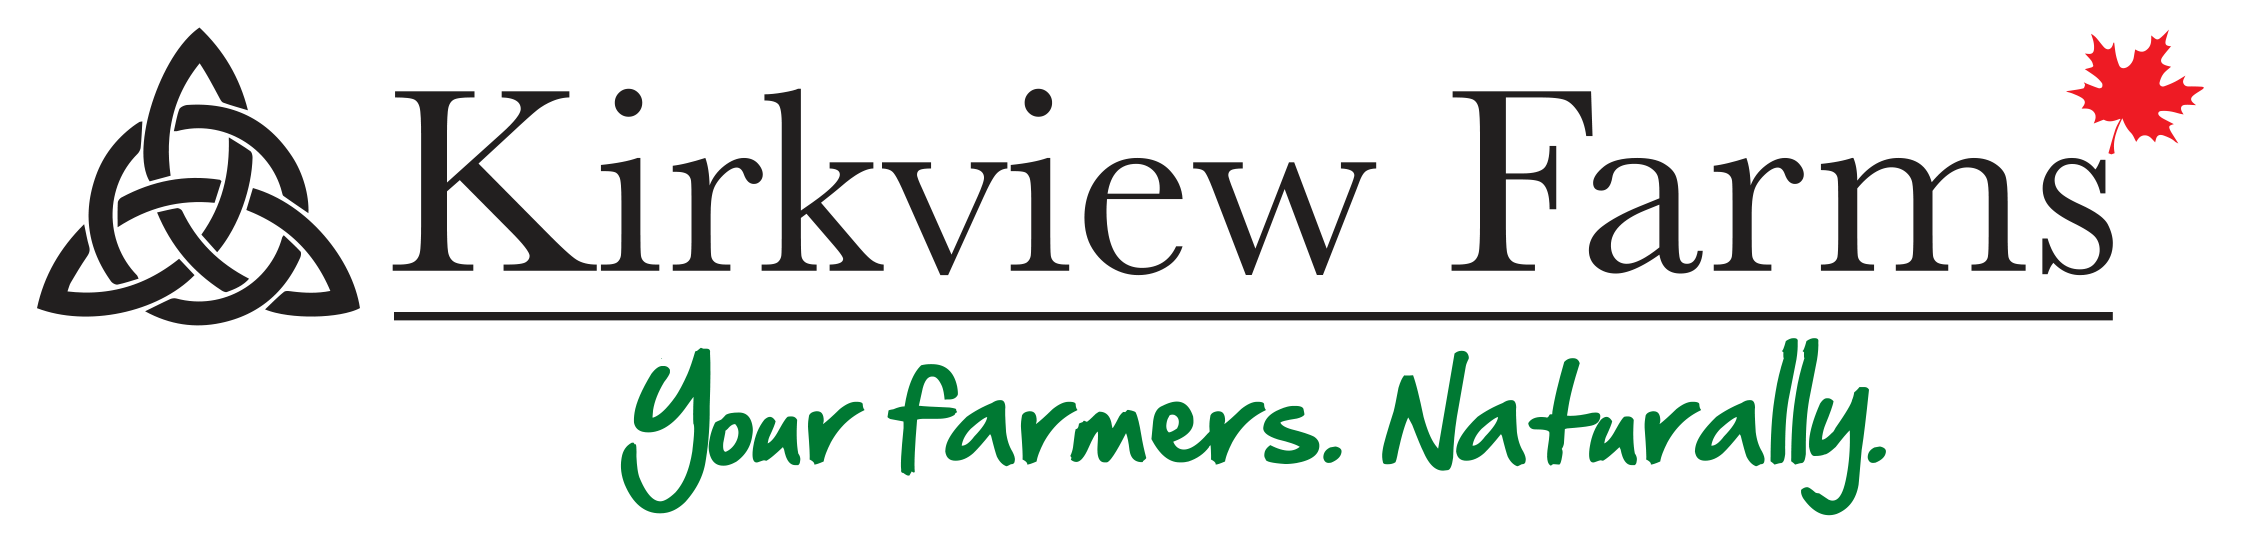 Kirkview Farms